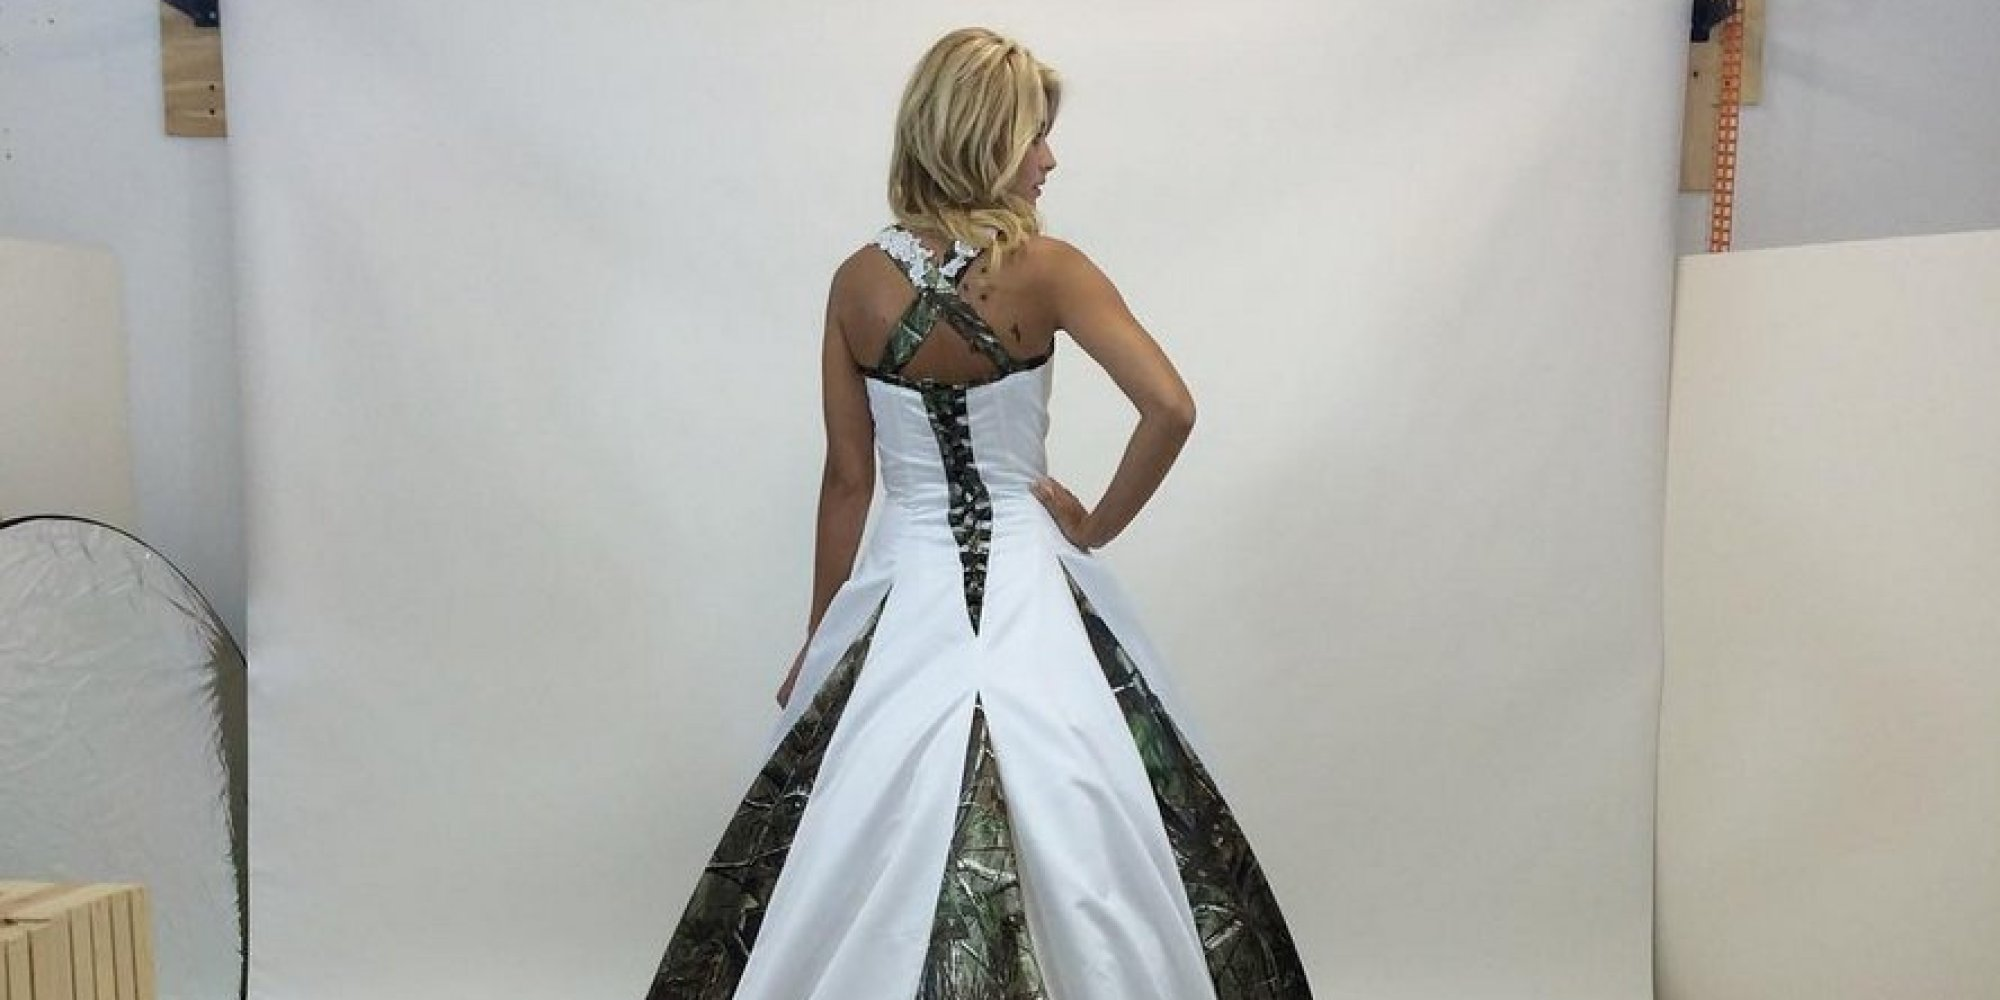 camo wedding dresses n white camo wedding dress Camouflage Wedding Dresses Are The Latest And Weirdest Bridal Trend HuffPost UK